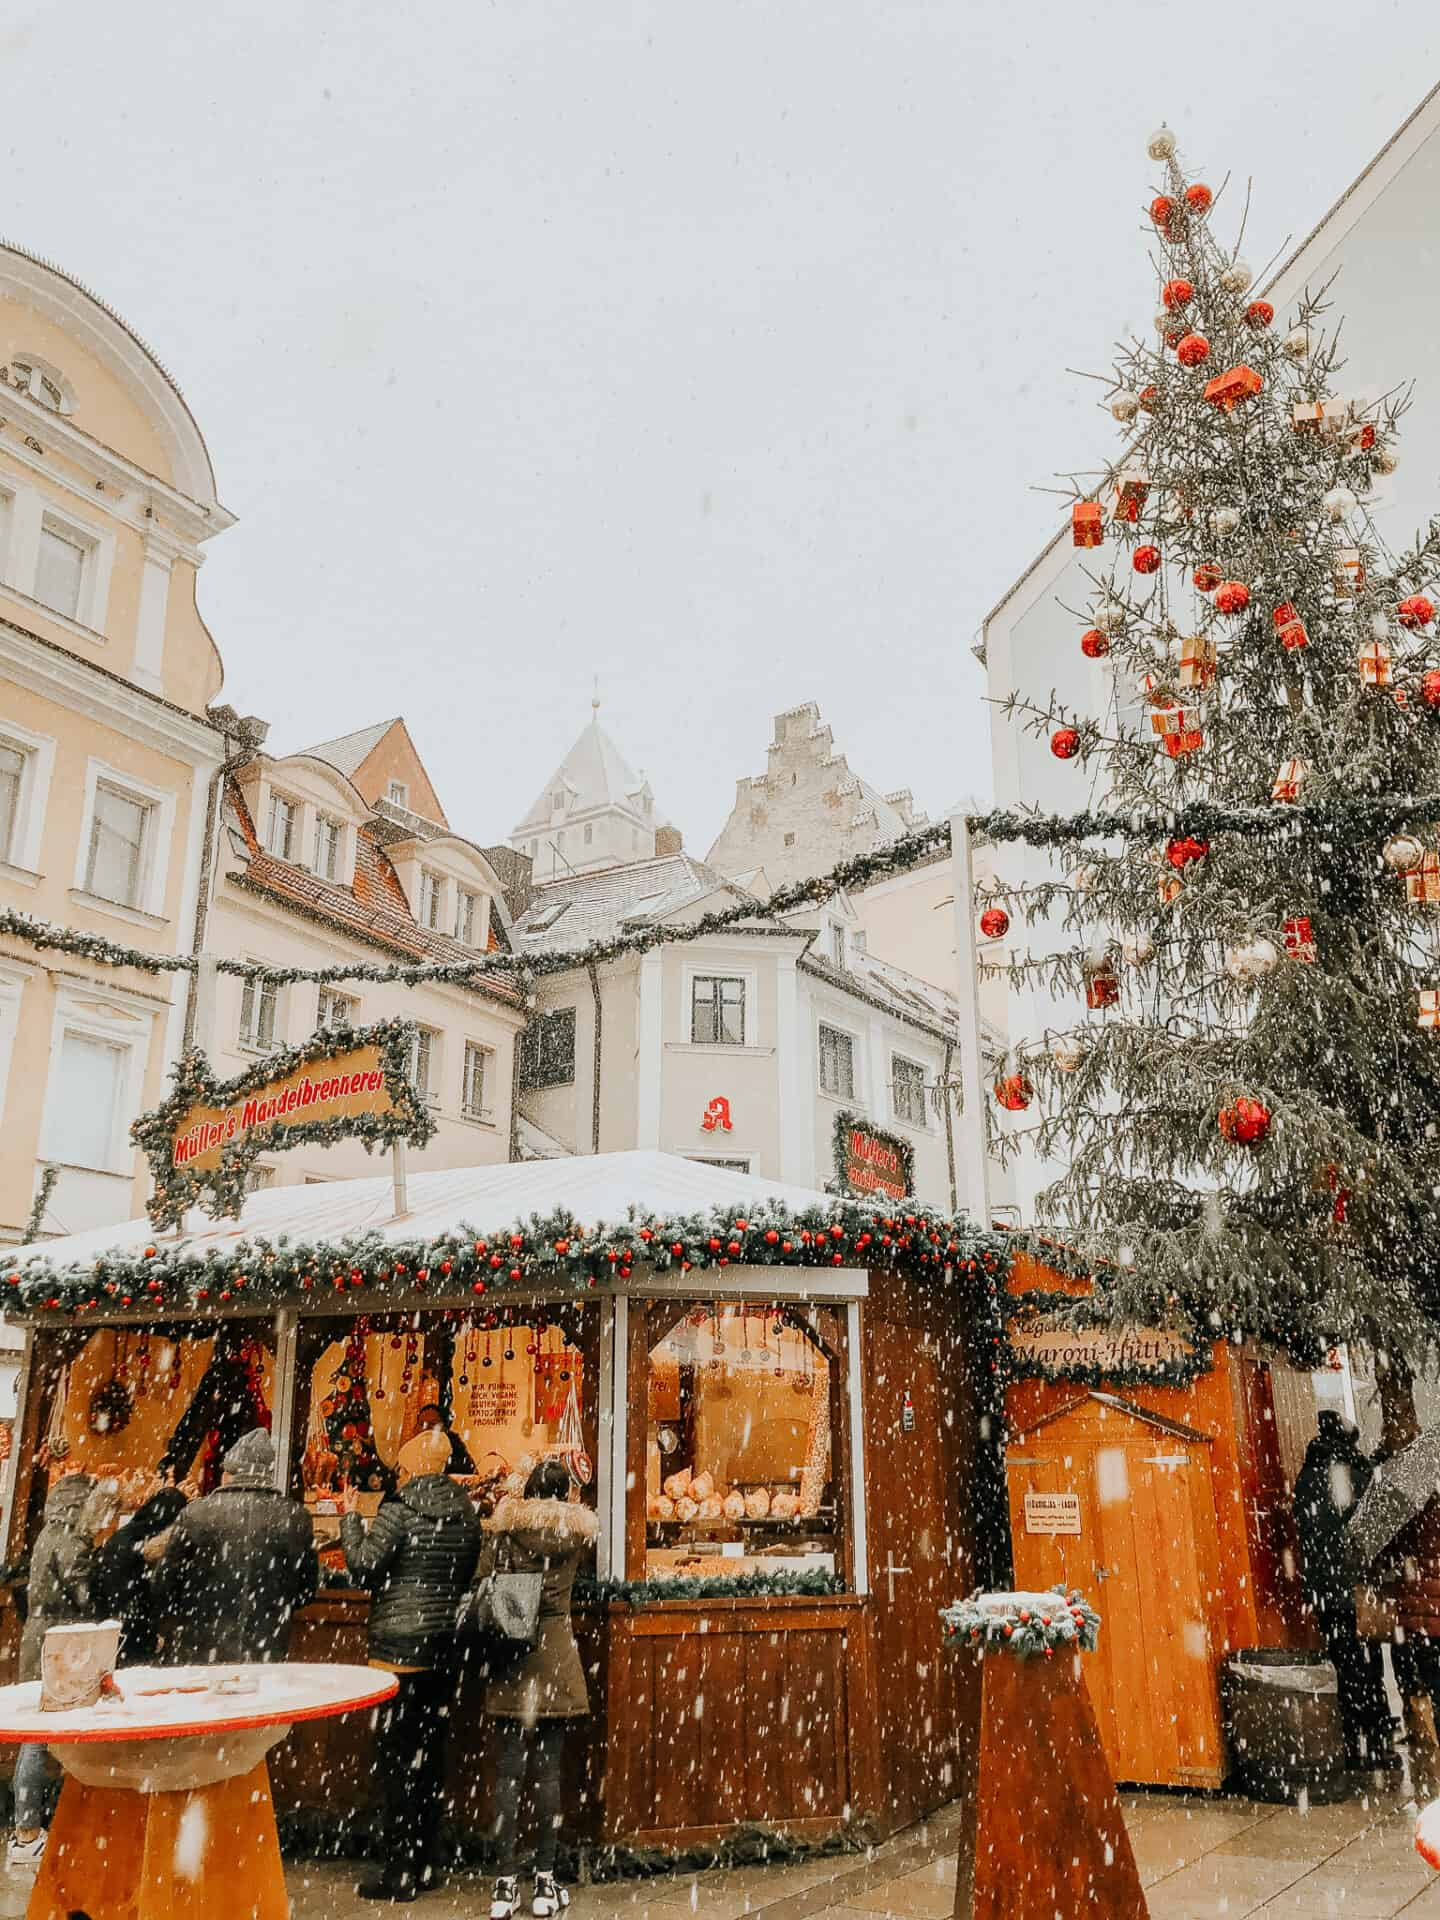 A photo tour to inspire you to visit the Christmas Markets in Europe: Regensburg